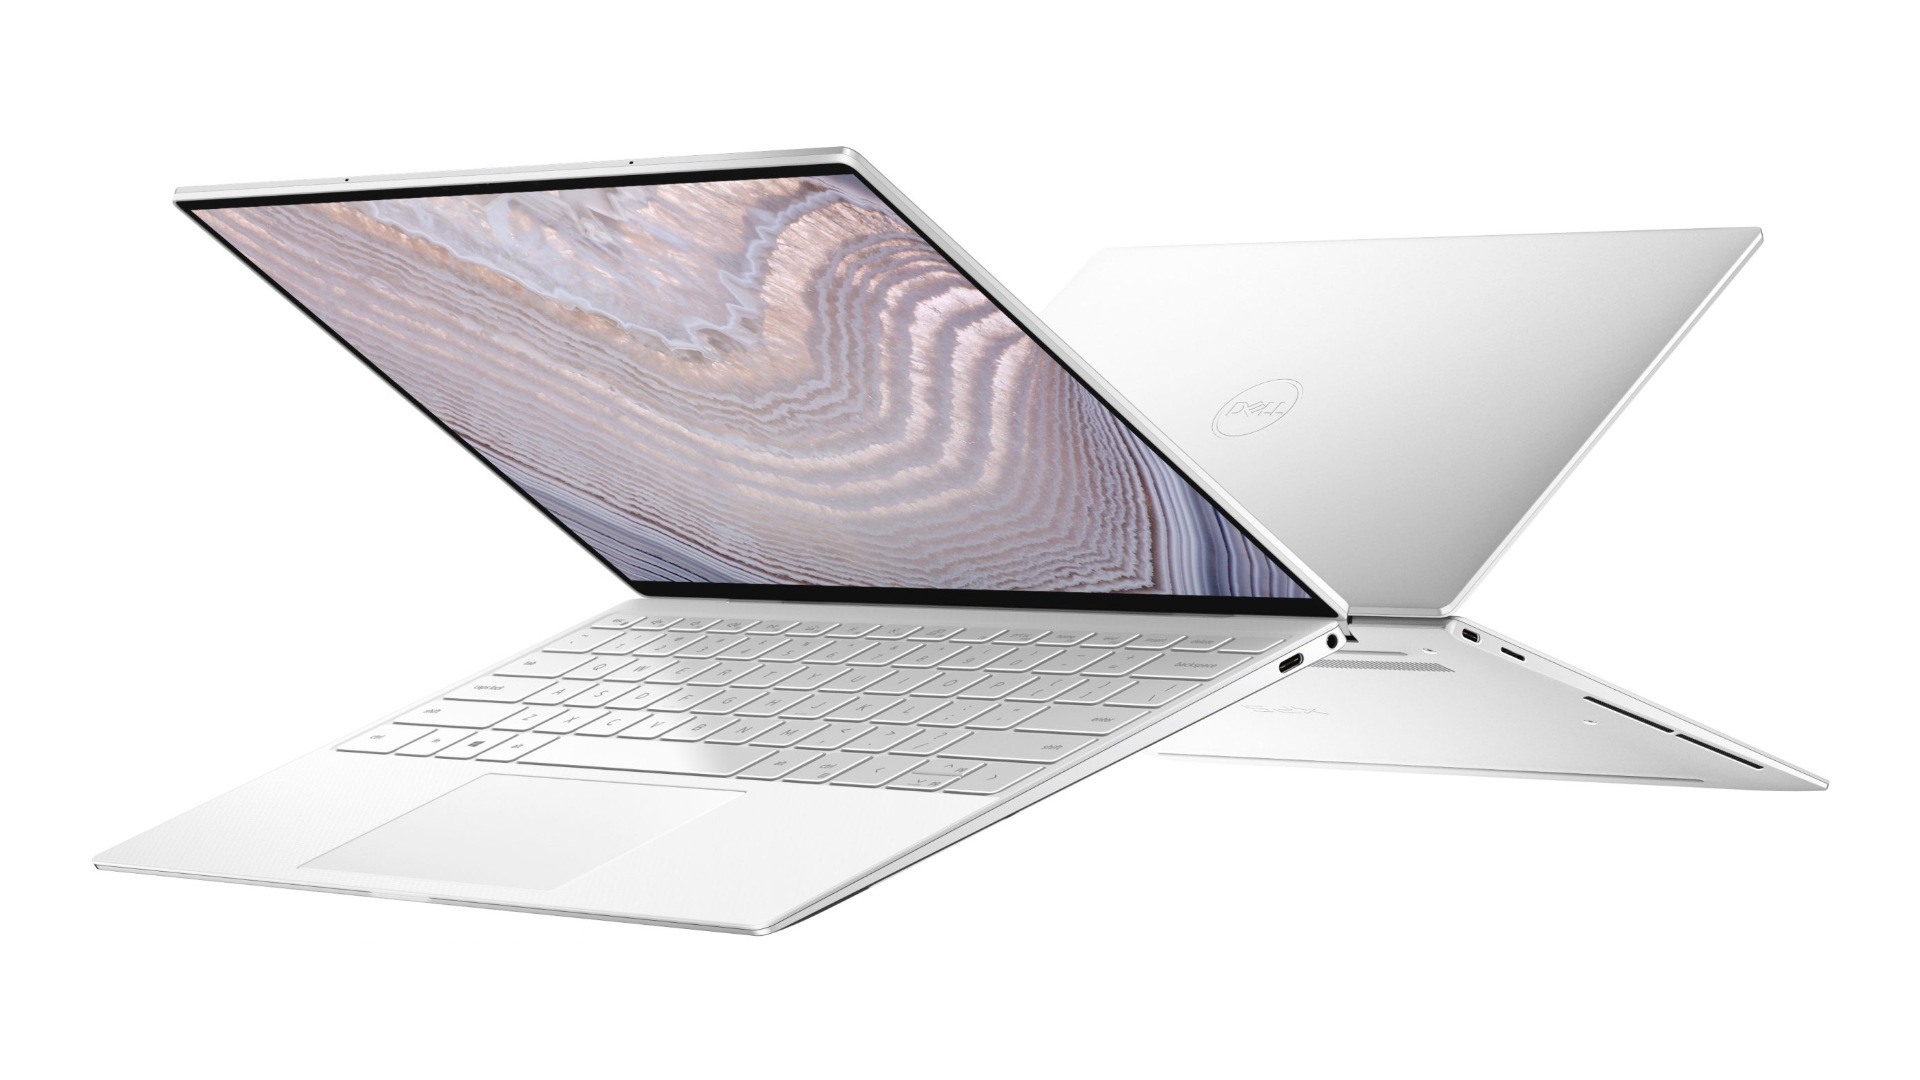 Dell has multiple Chromebooks in development, and one could be an XPS